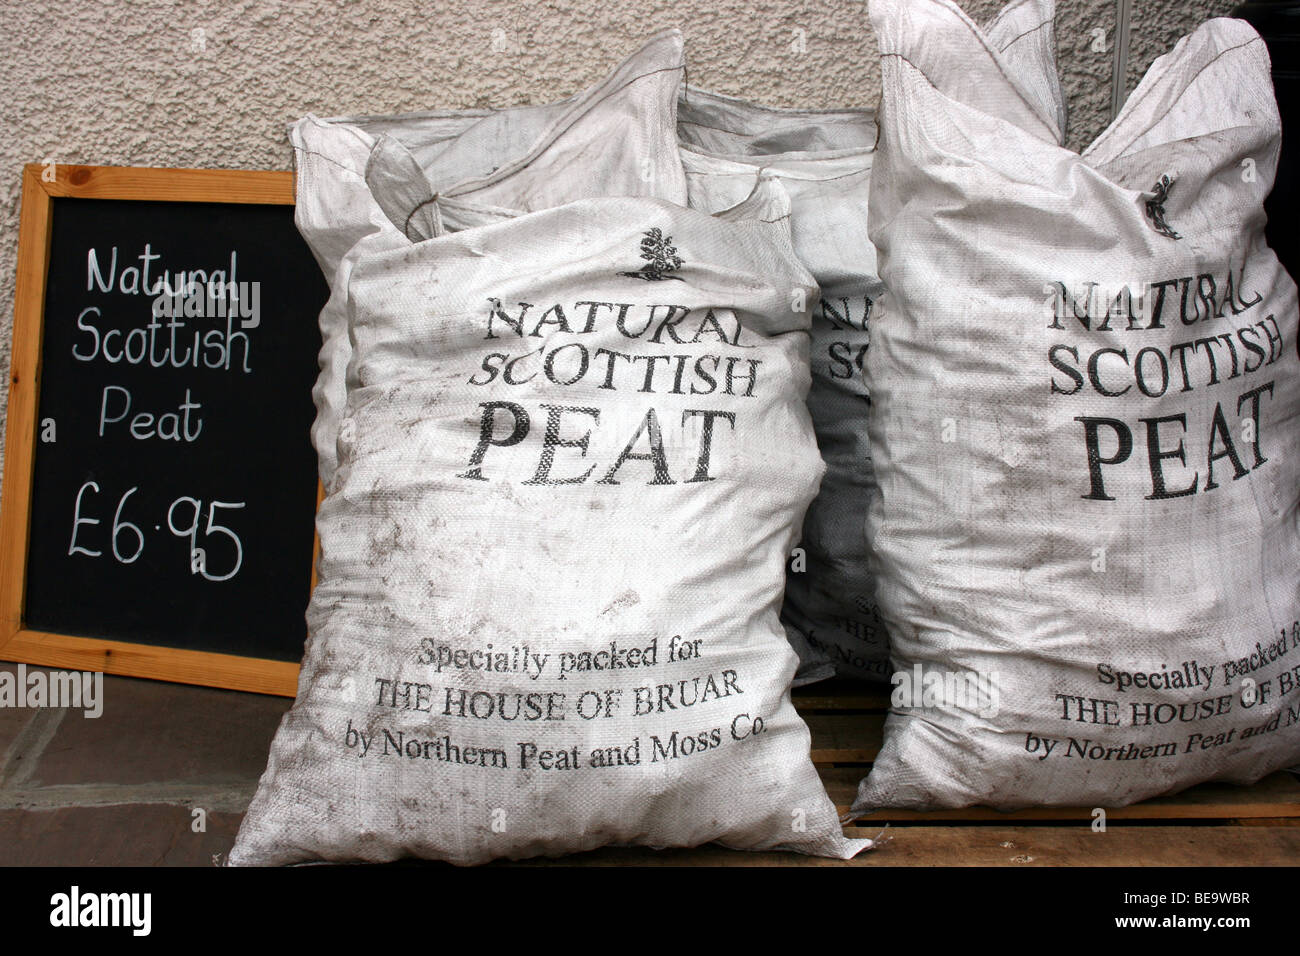 hessian sacks of Scottish peat, sold to be used as fuel, being sold at an outlet in Perthshire, Scotland - Stock Image